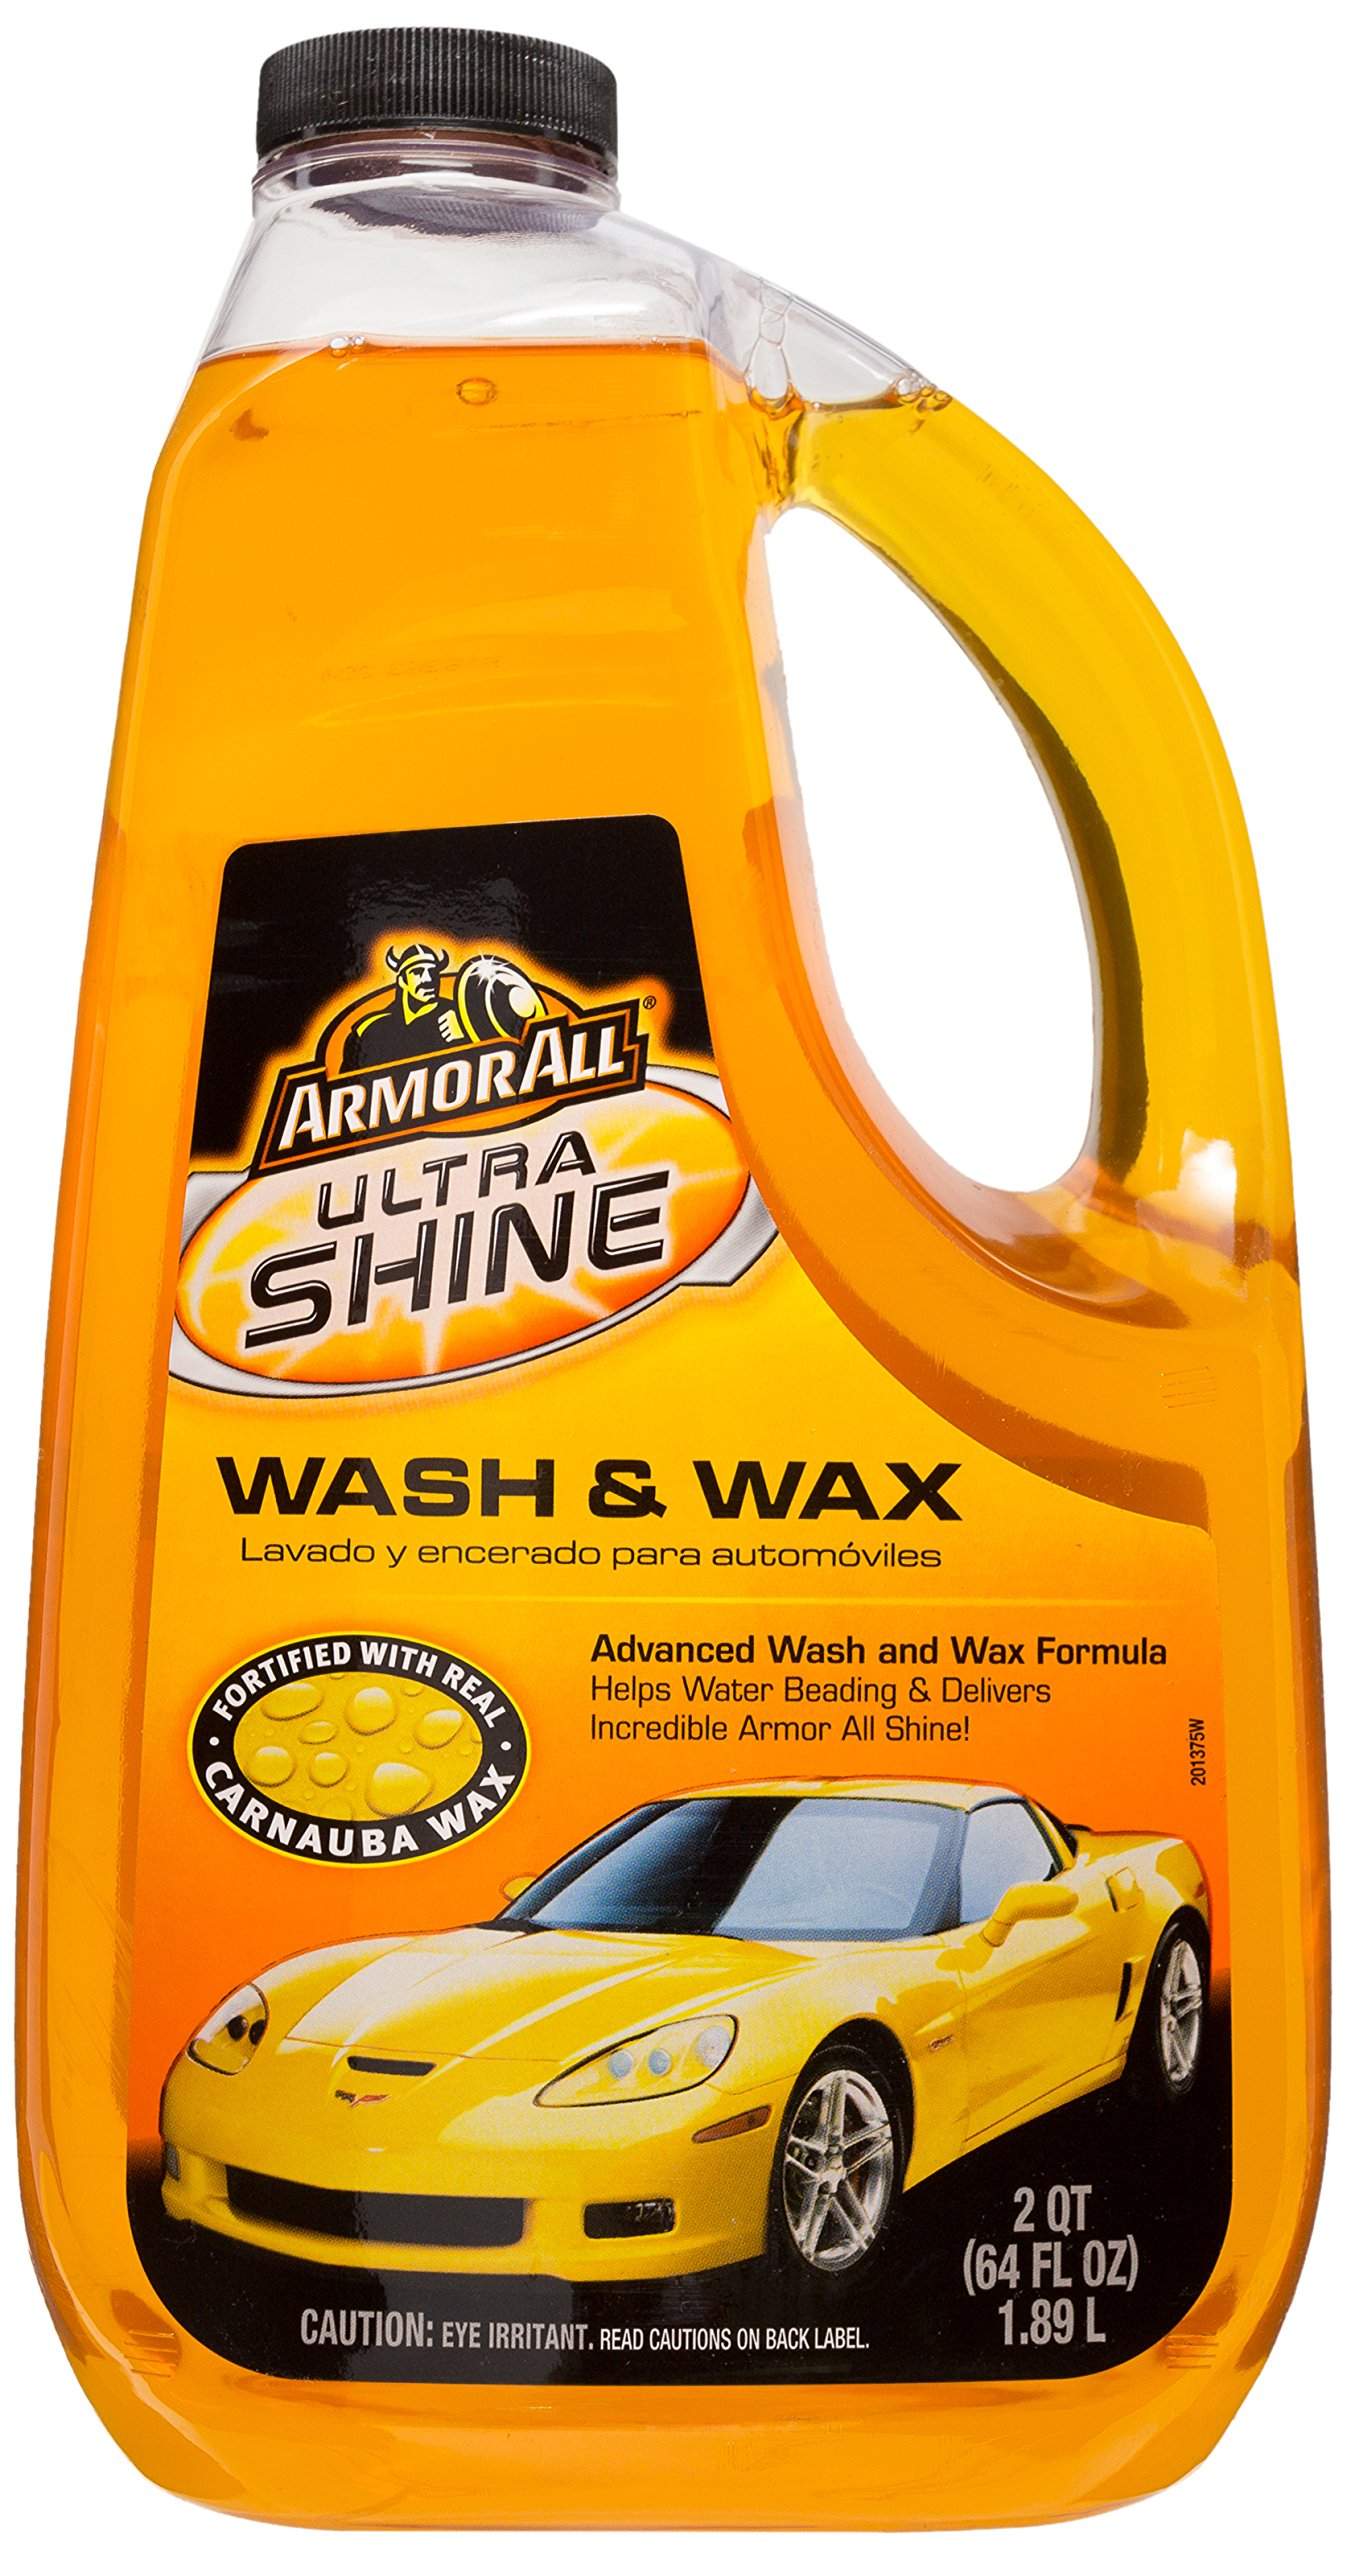 how to use armor all wash and wax